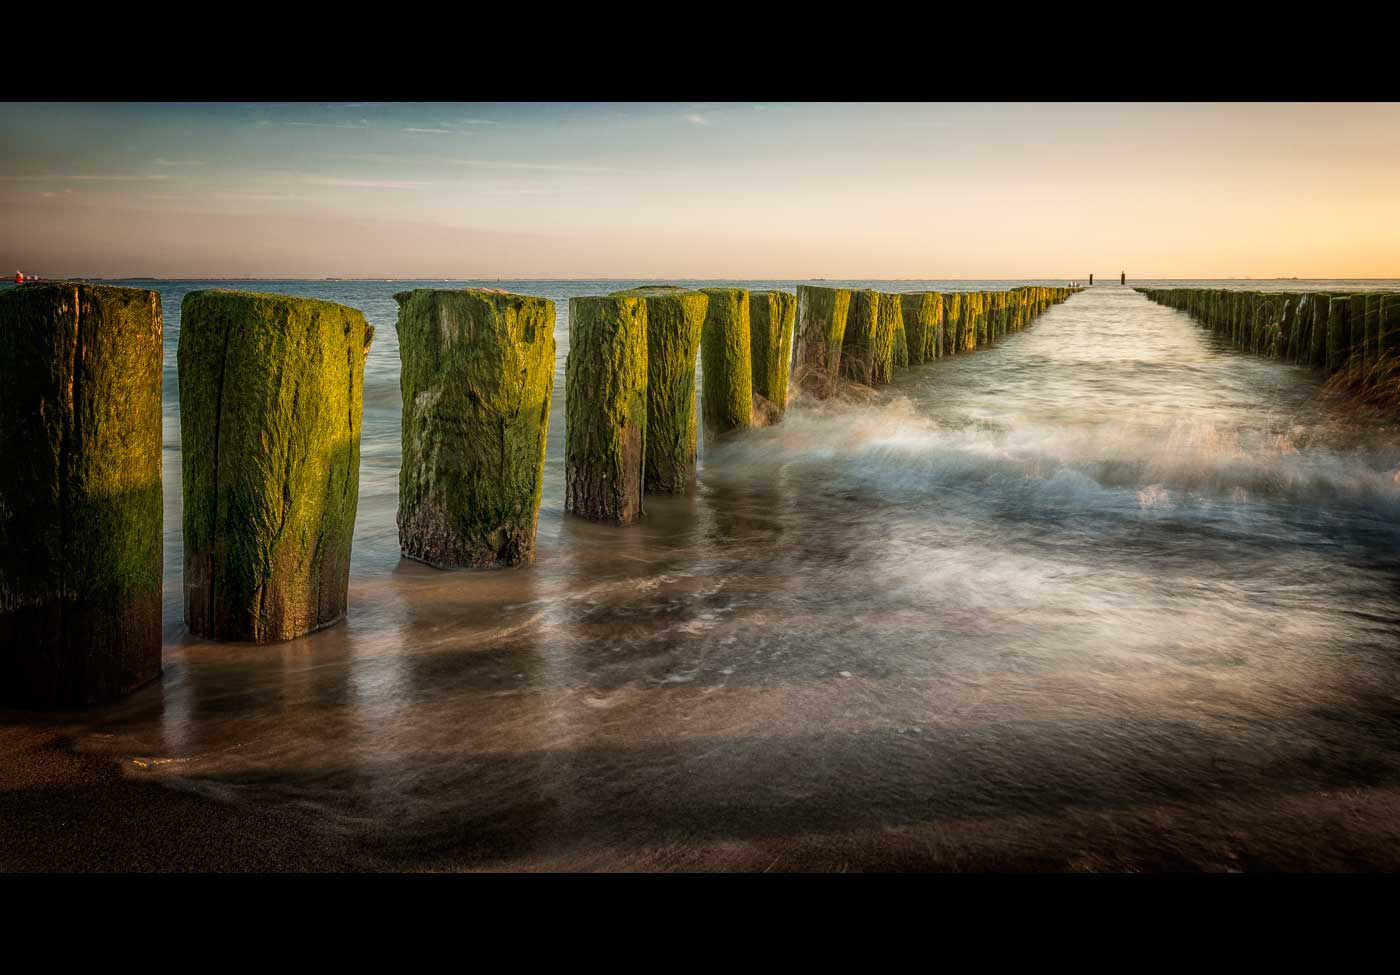 Photograph Zeeland by Armin Barth on 500px